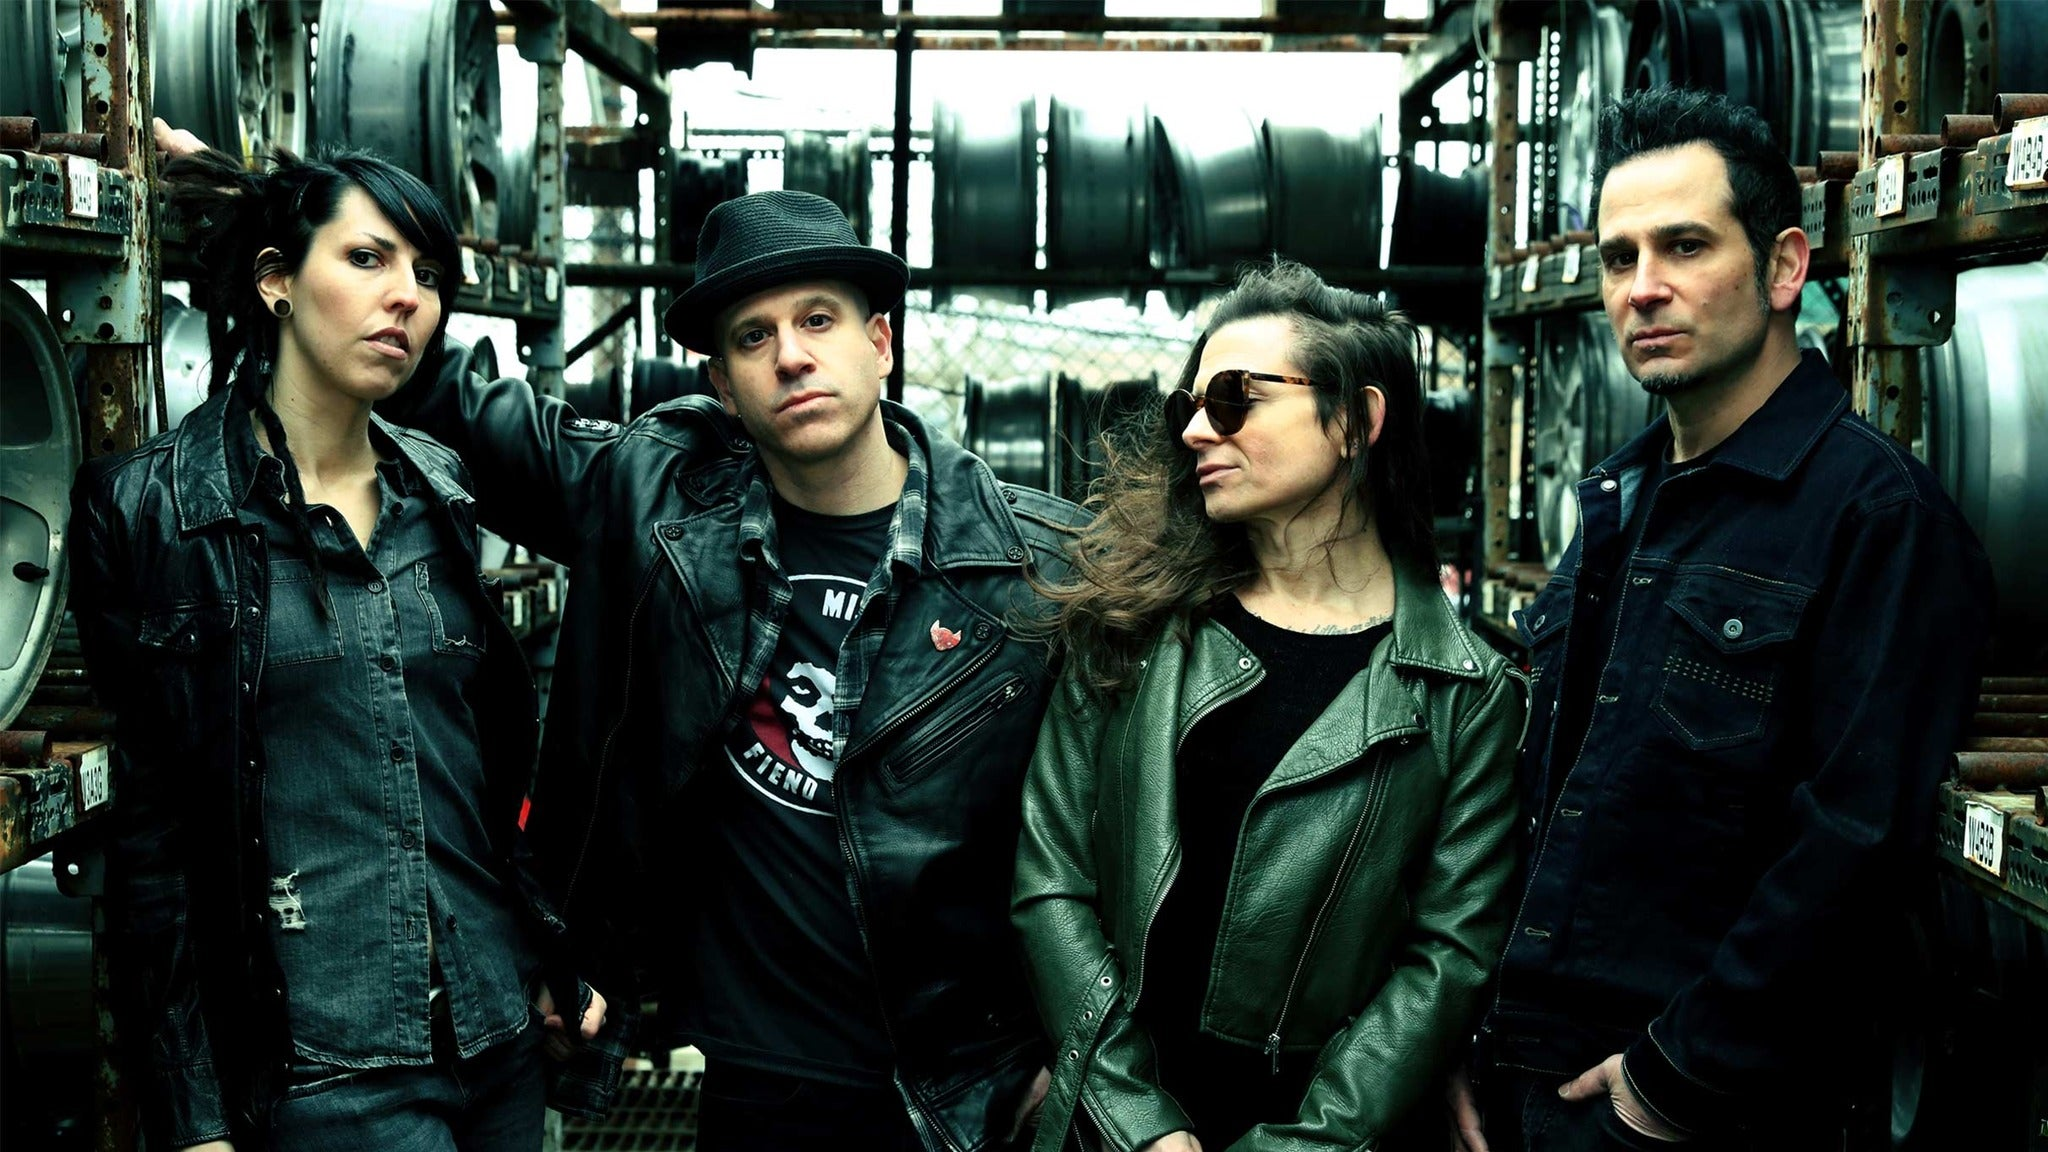 Life Of Agony / Sick Of It All at The Stone Pony